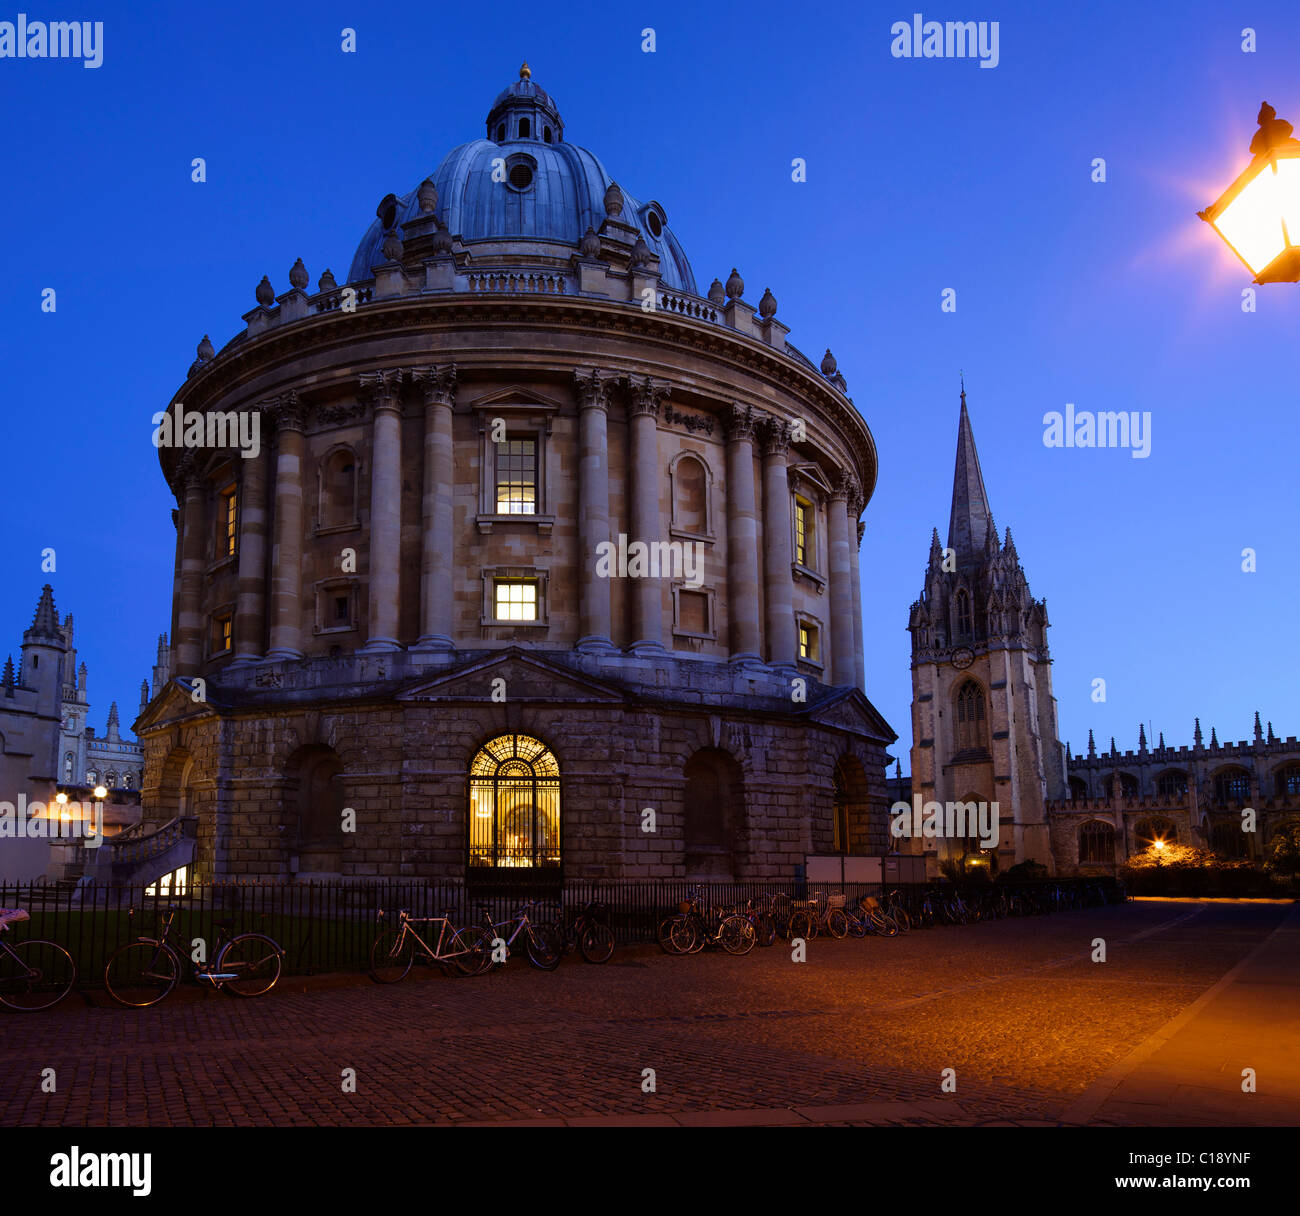 Radcliffe Camera and Church of St Mary the Virgin, evening light, Oxford University, Oxford, Oxfordshire, England, - Stock Image